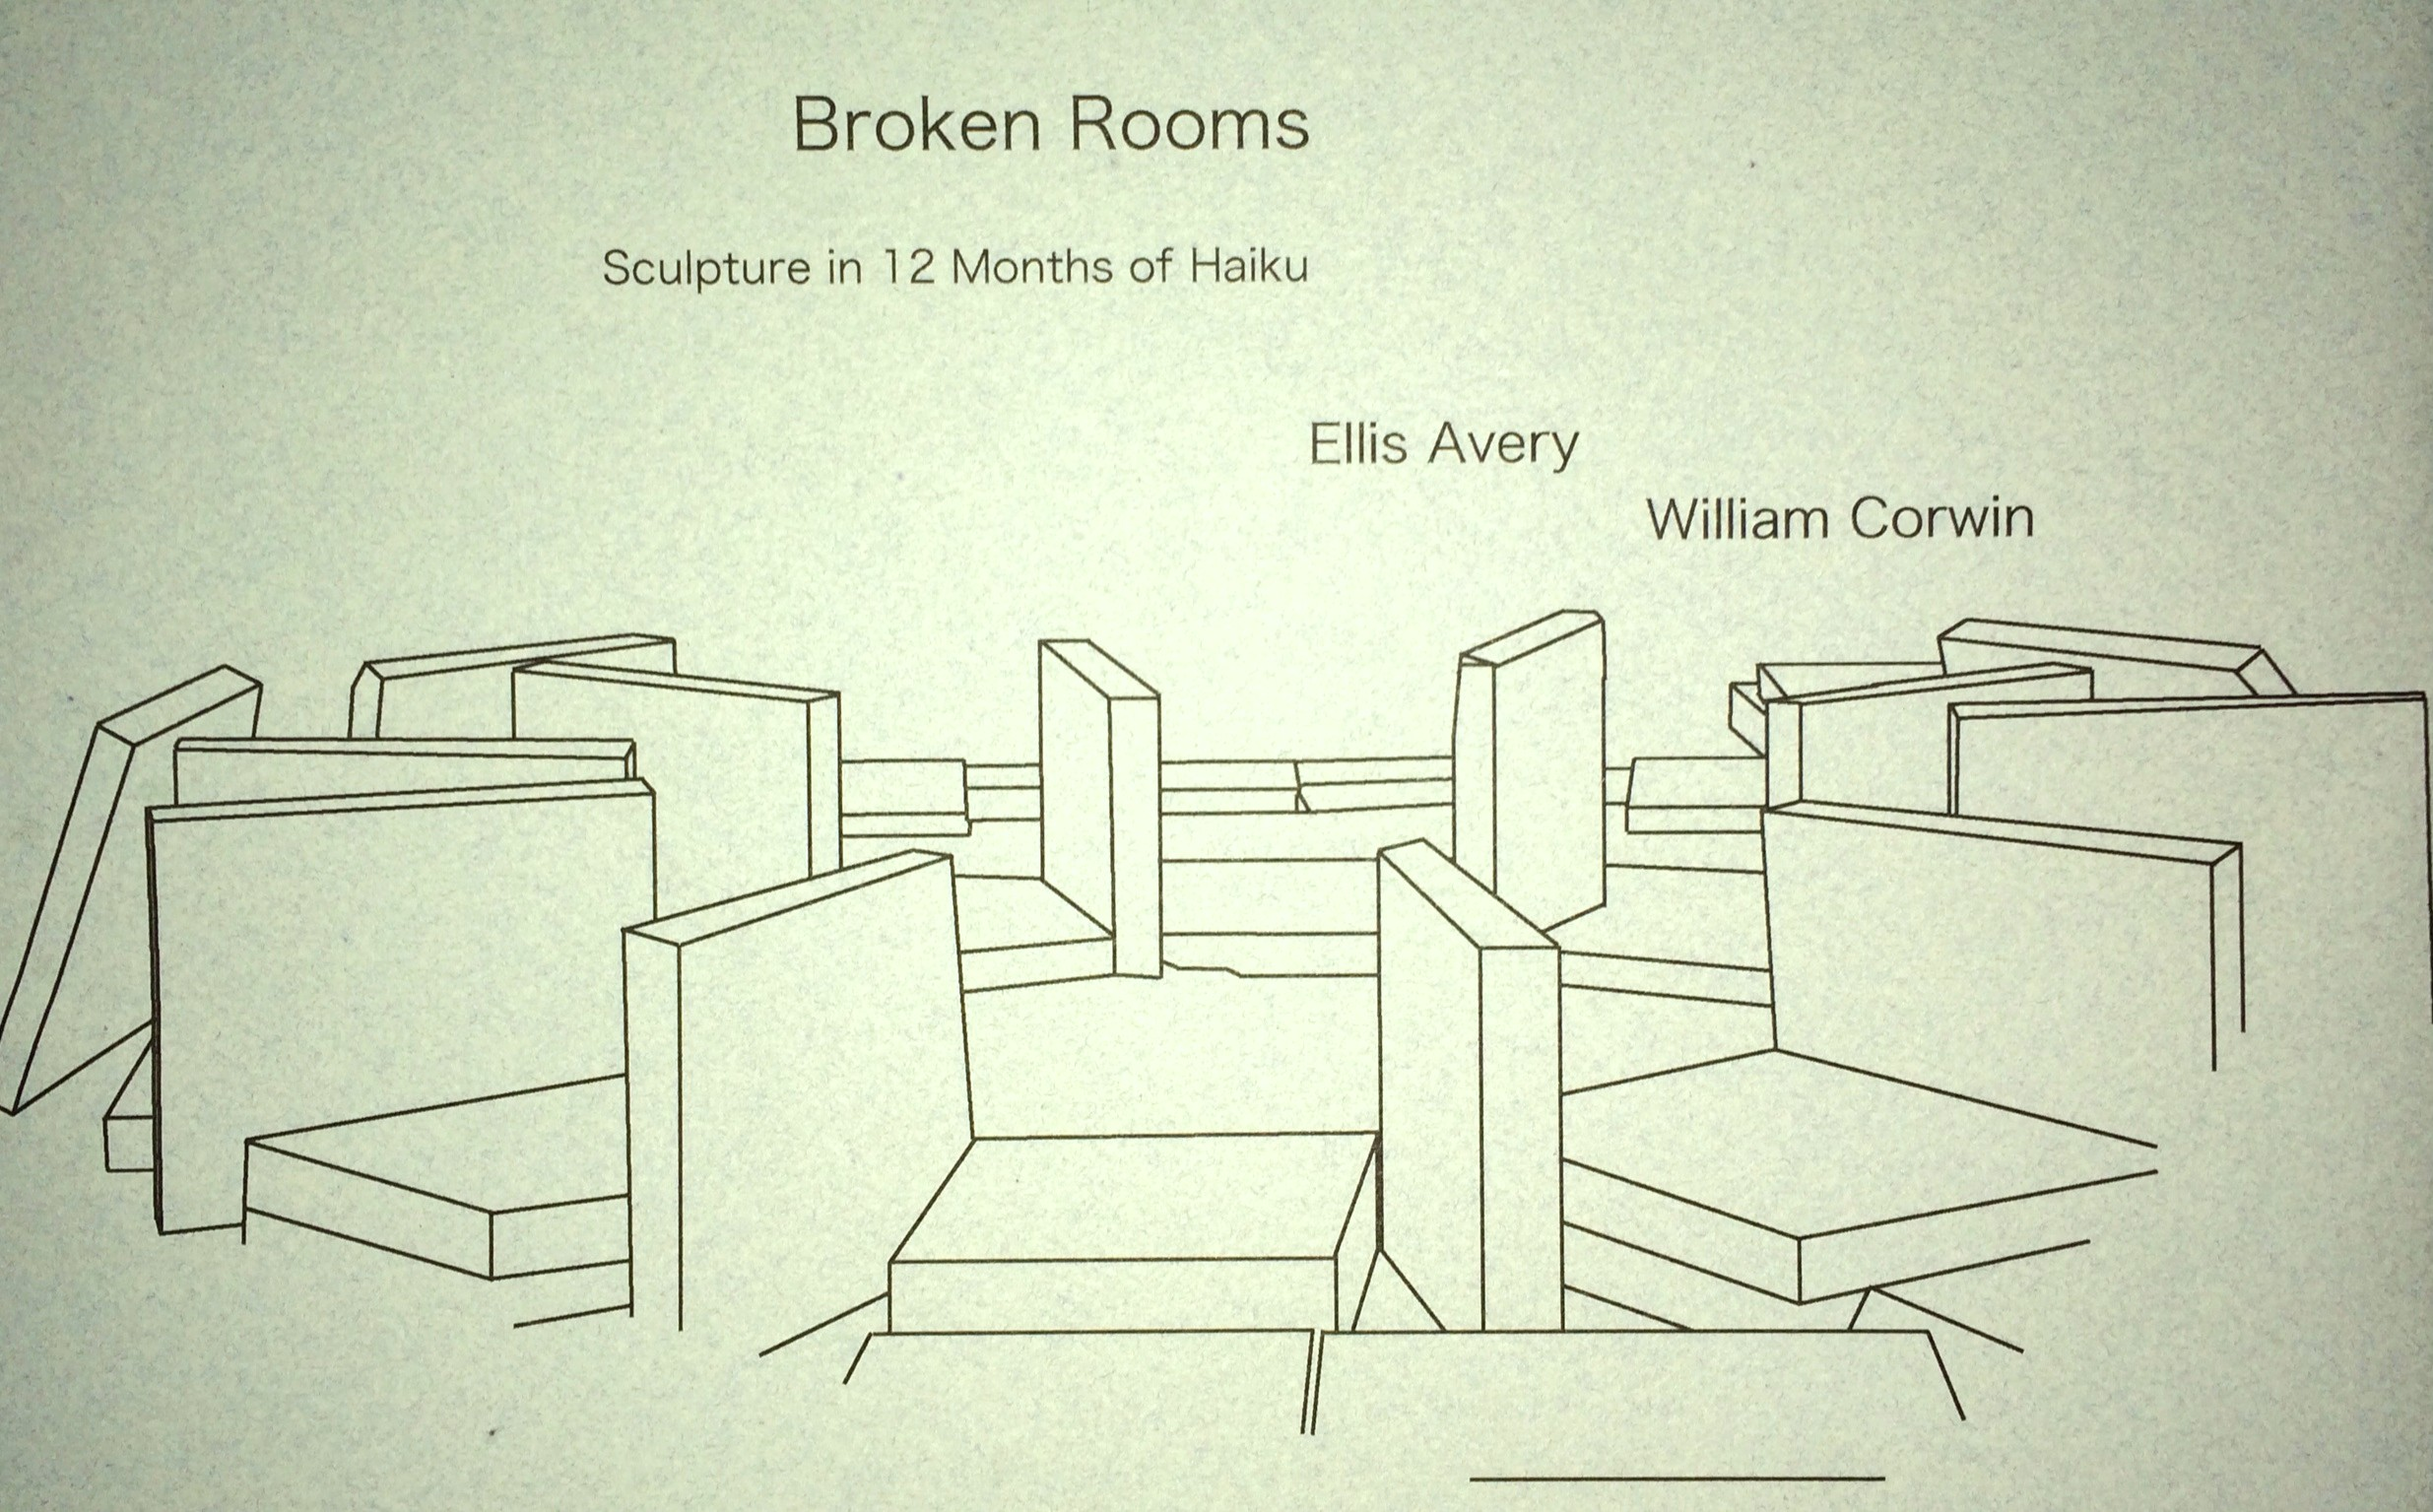 Broken_Rooms.JPG